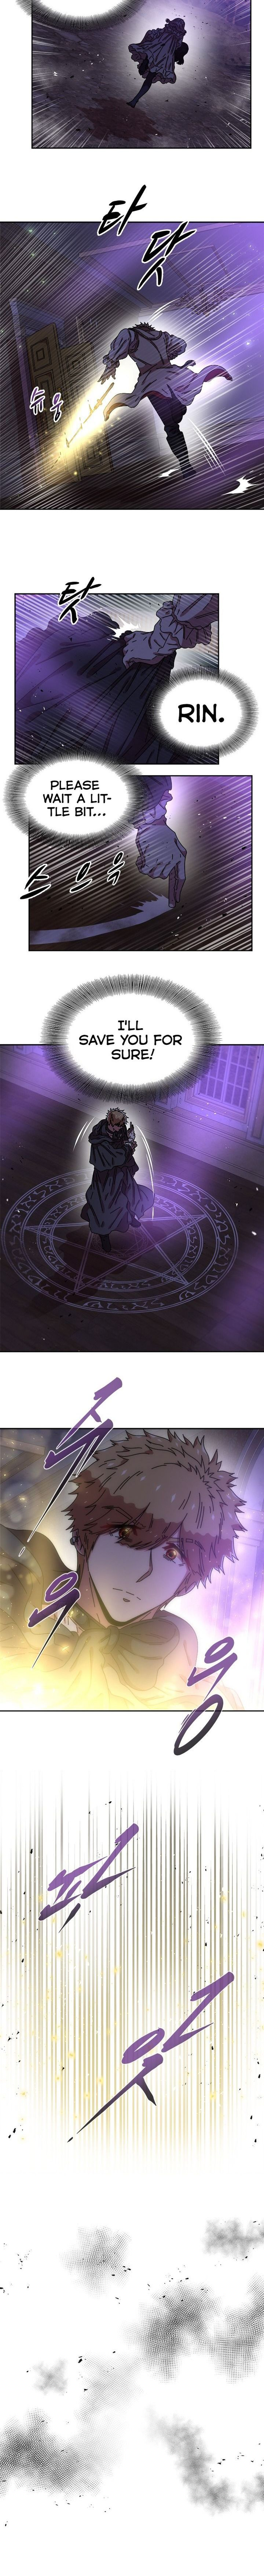 i_was_born_as_the_demon_lords_daughter_45_5